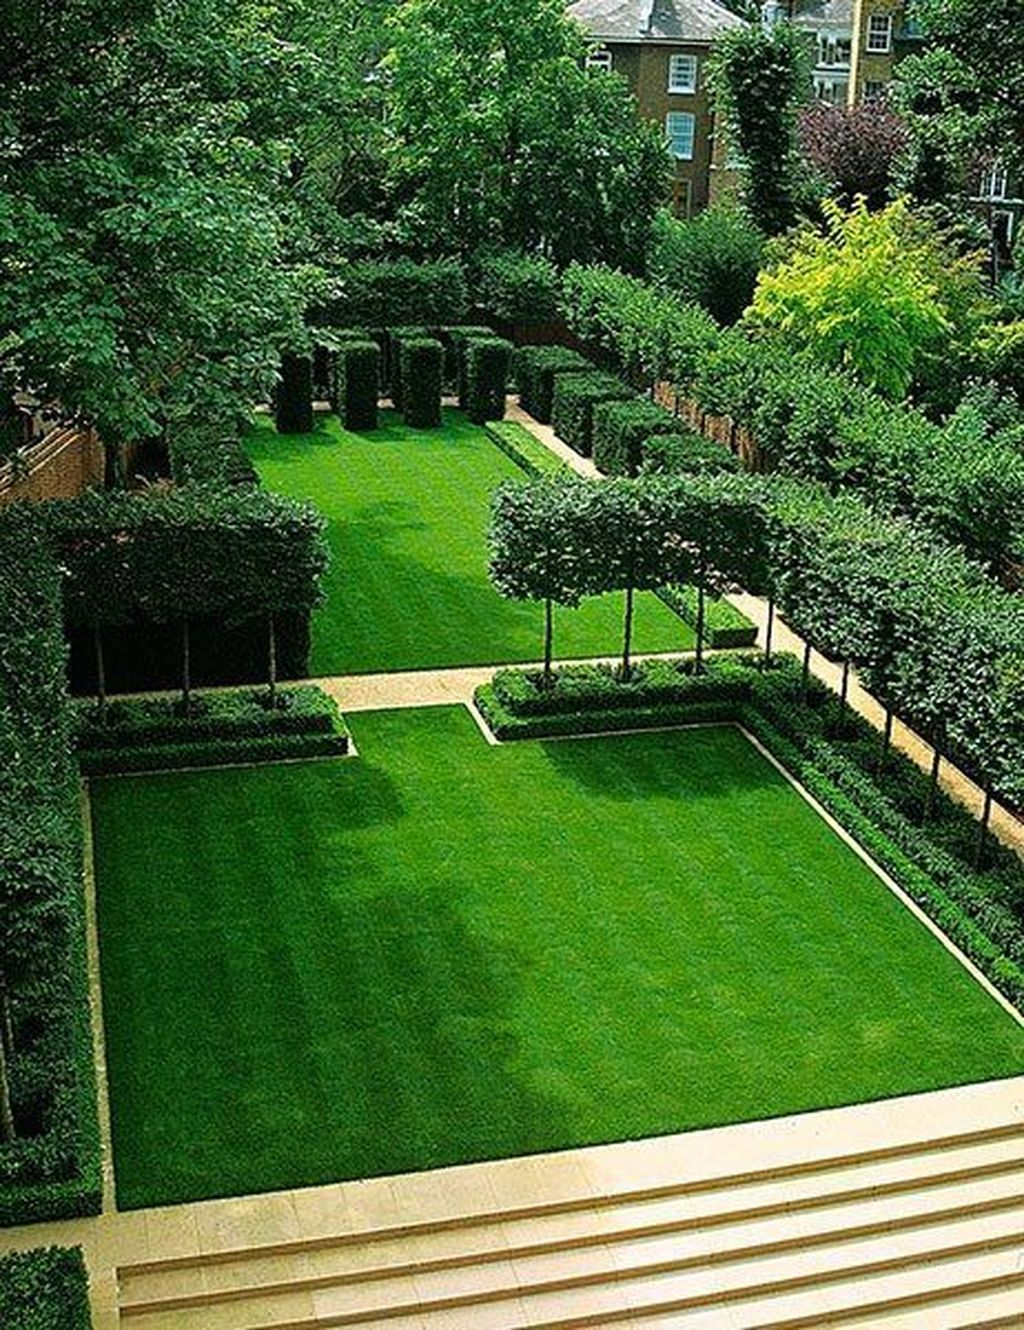 Wonderful Modern Garden Design Ideas 29 1